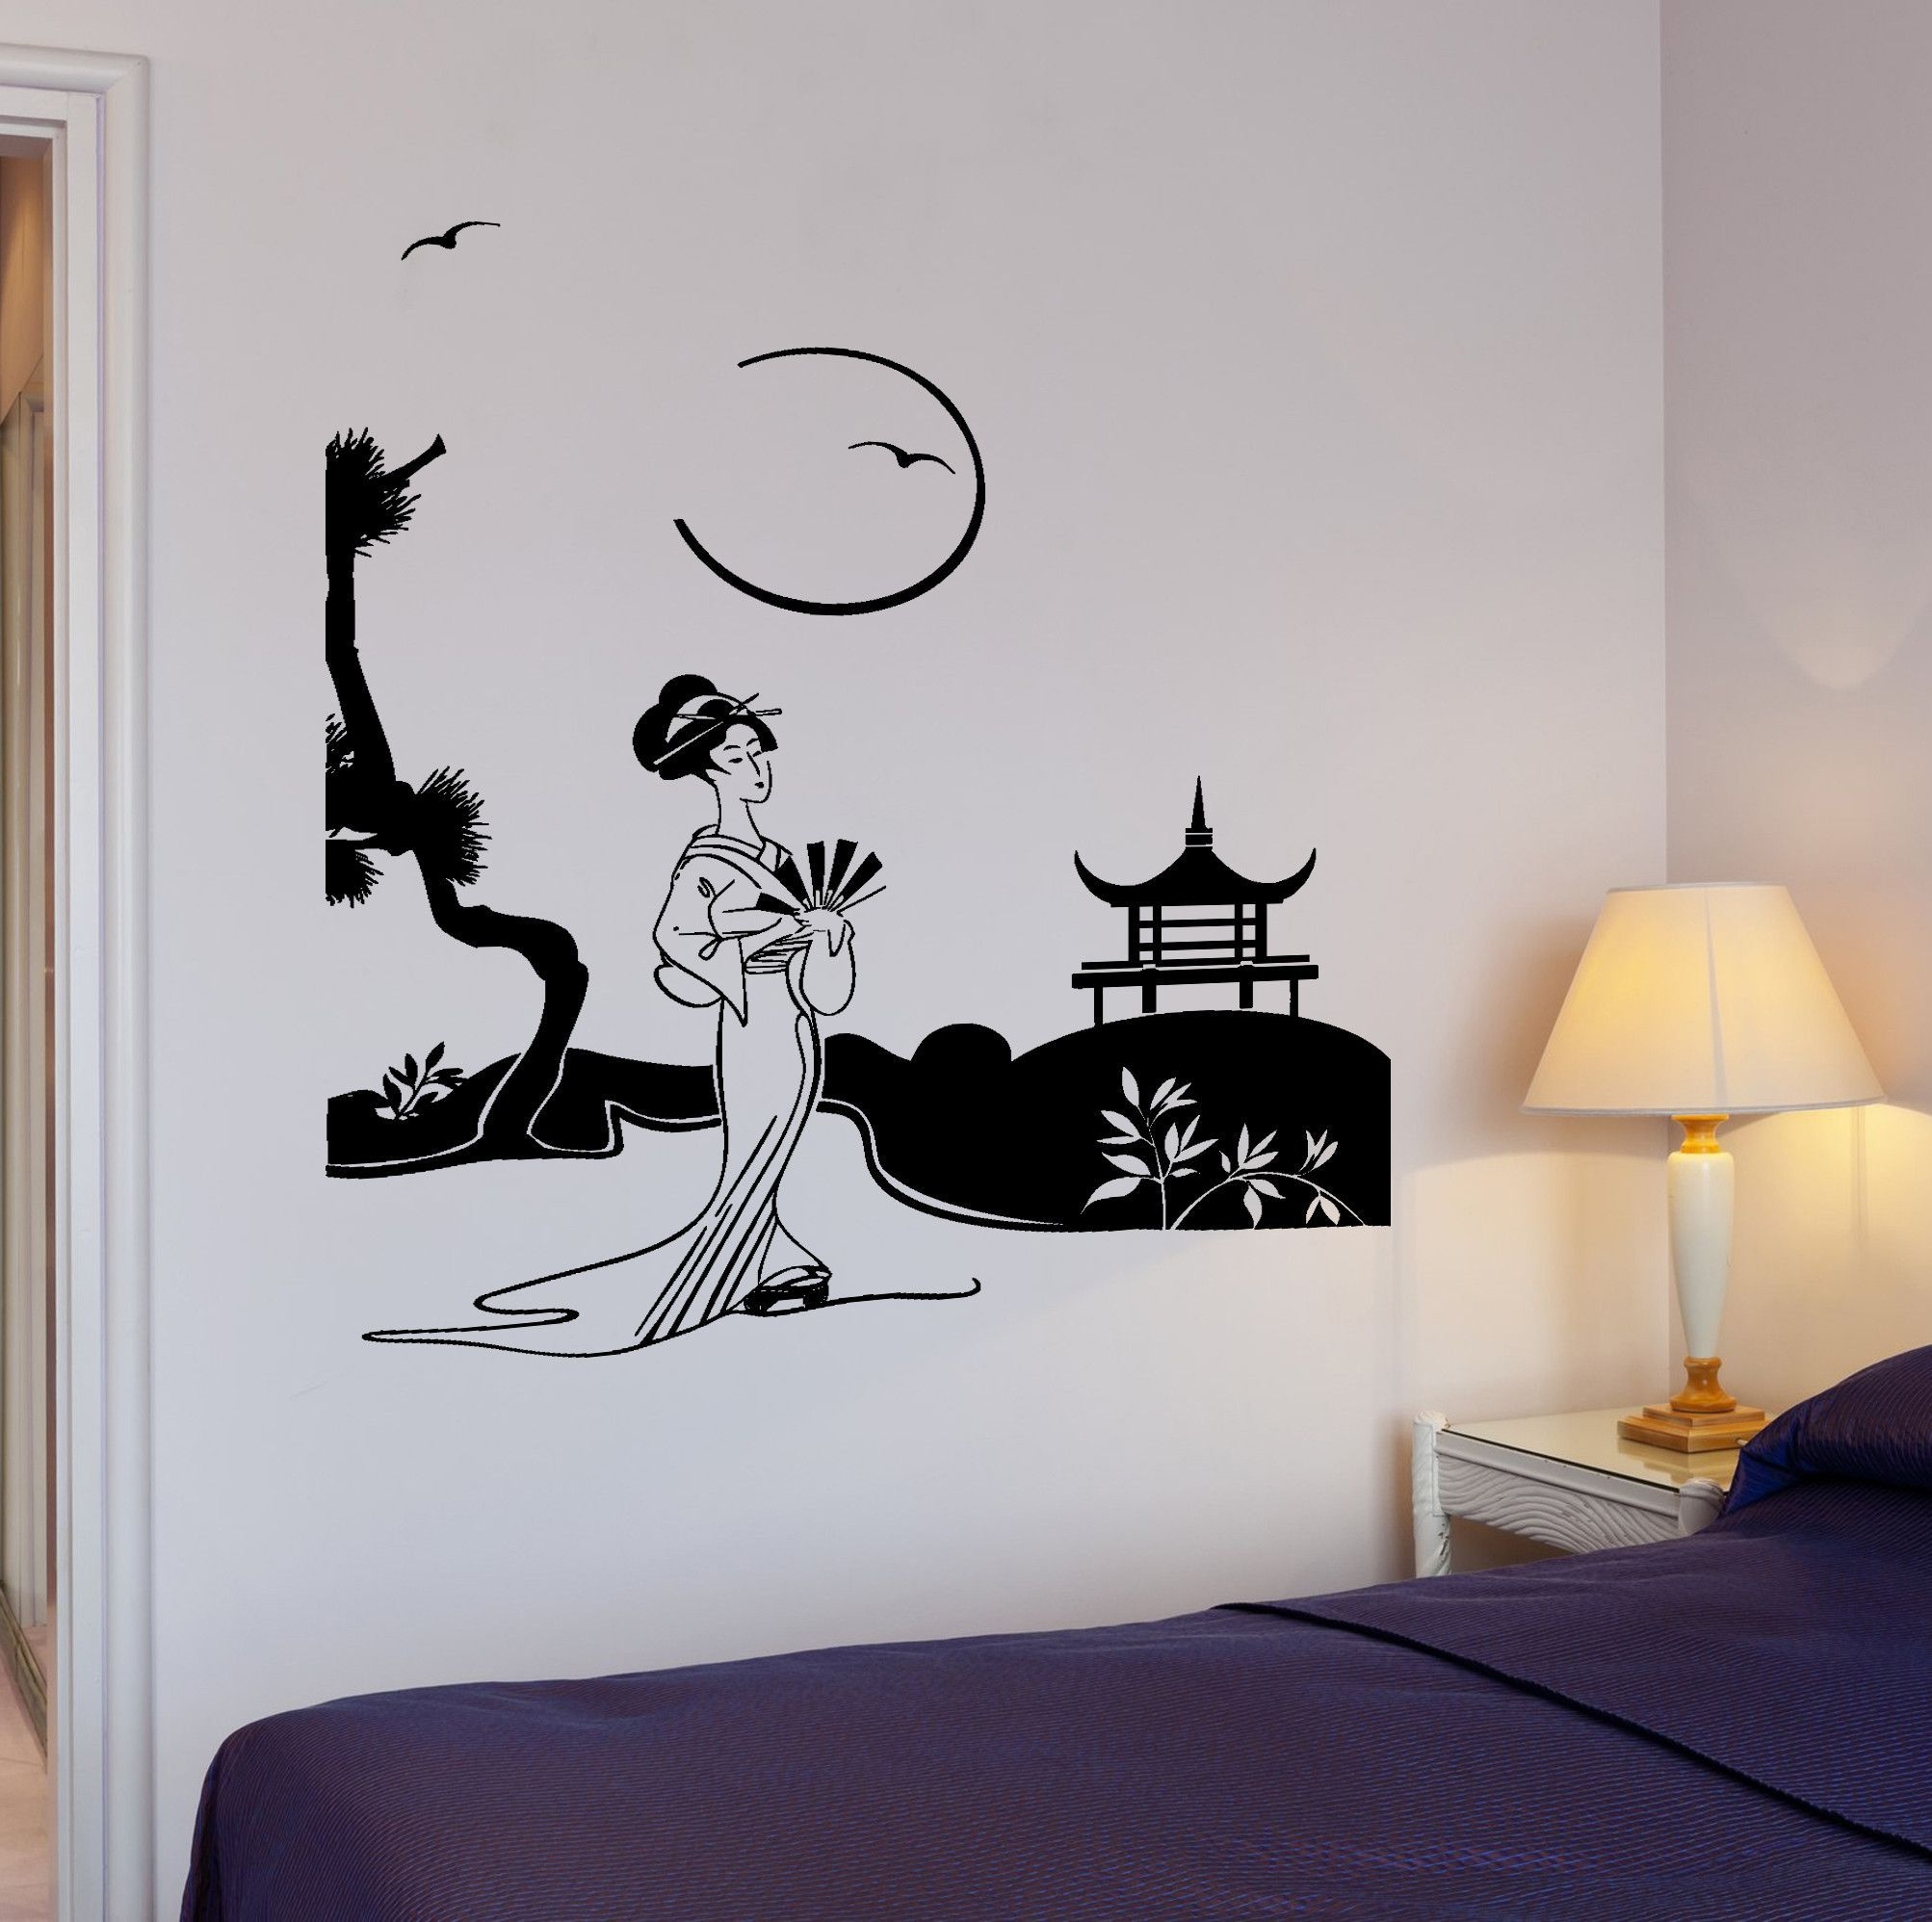 Wall Decal Geisha Japan Pagoda Japanese Views Decor Unique Gift - Japanese wall decals